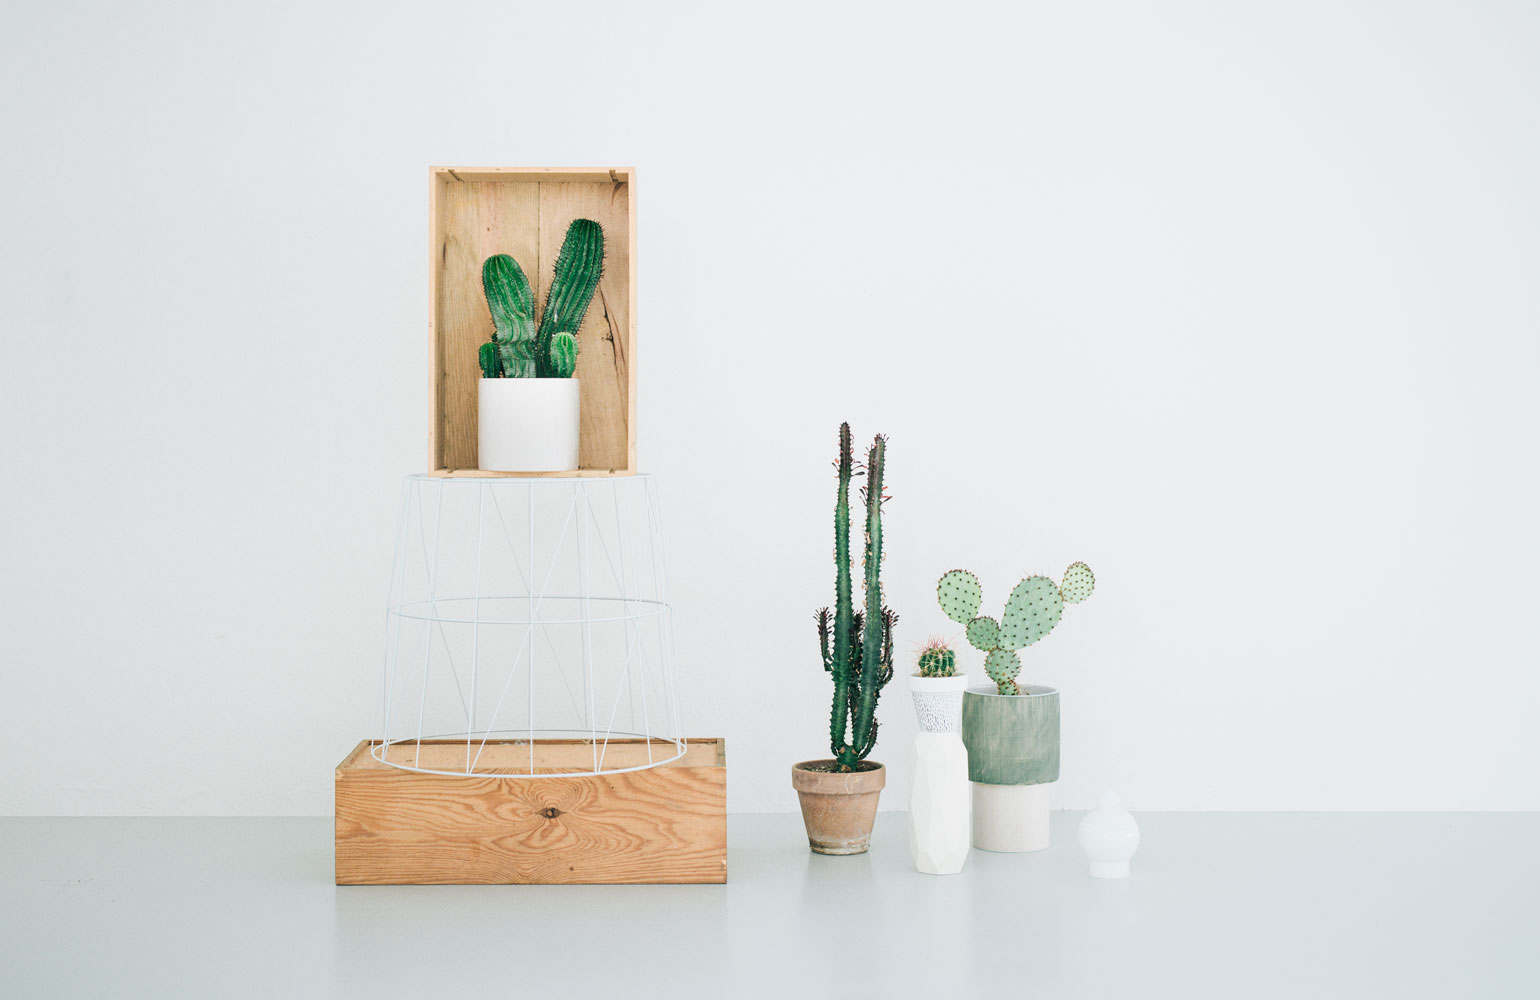 kaktus store, cactus shop by chiara stella home7